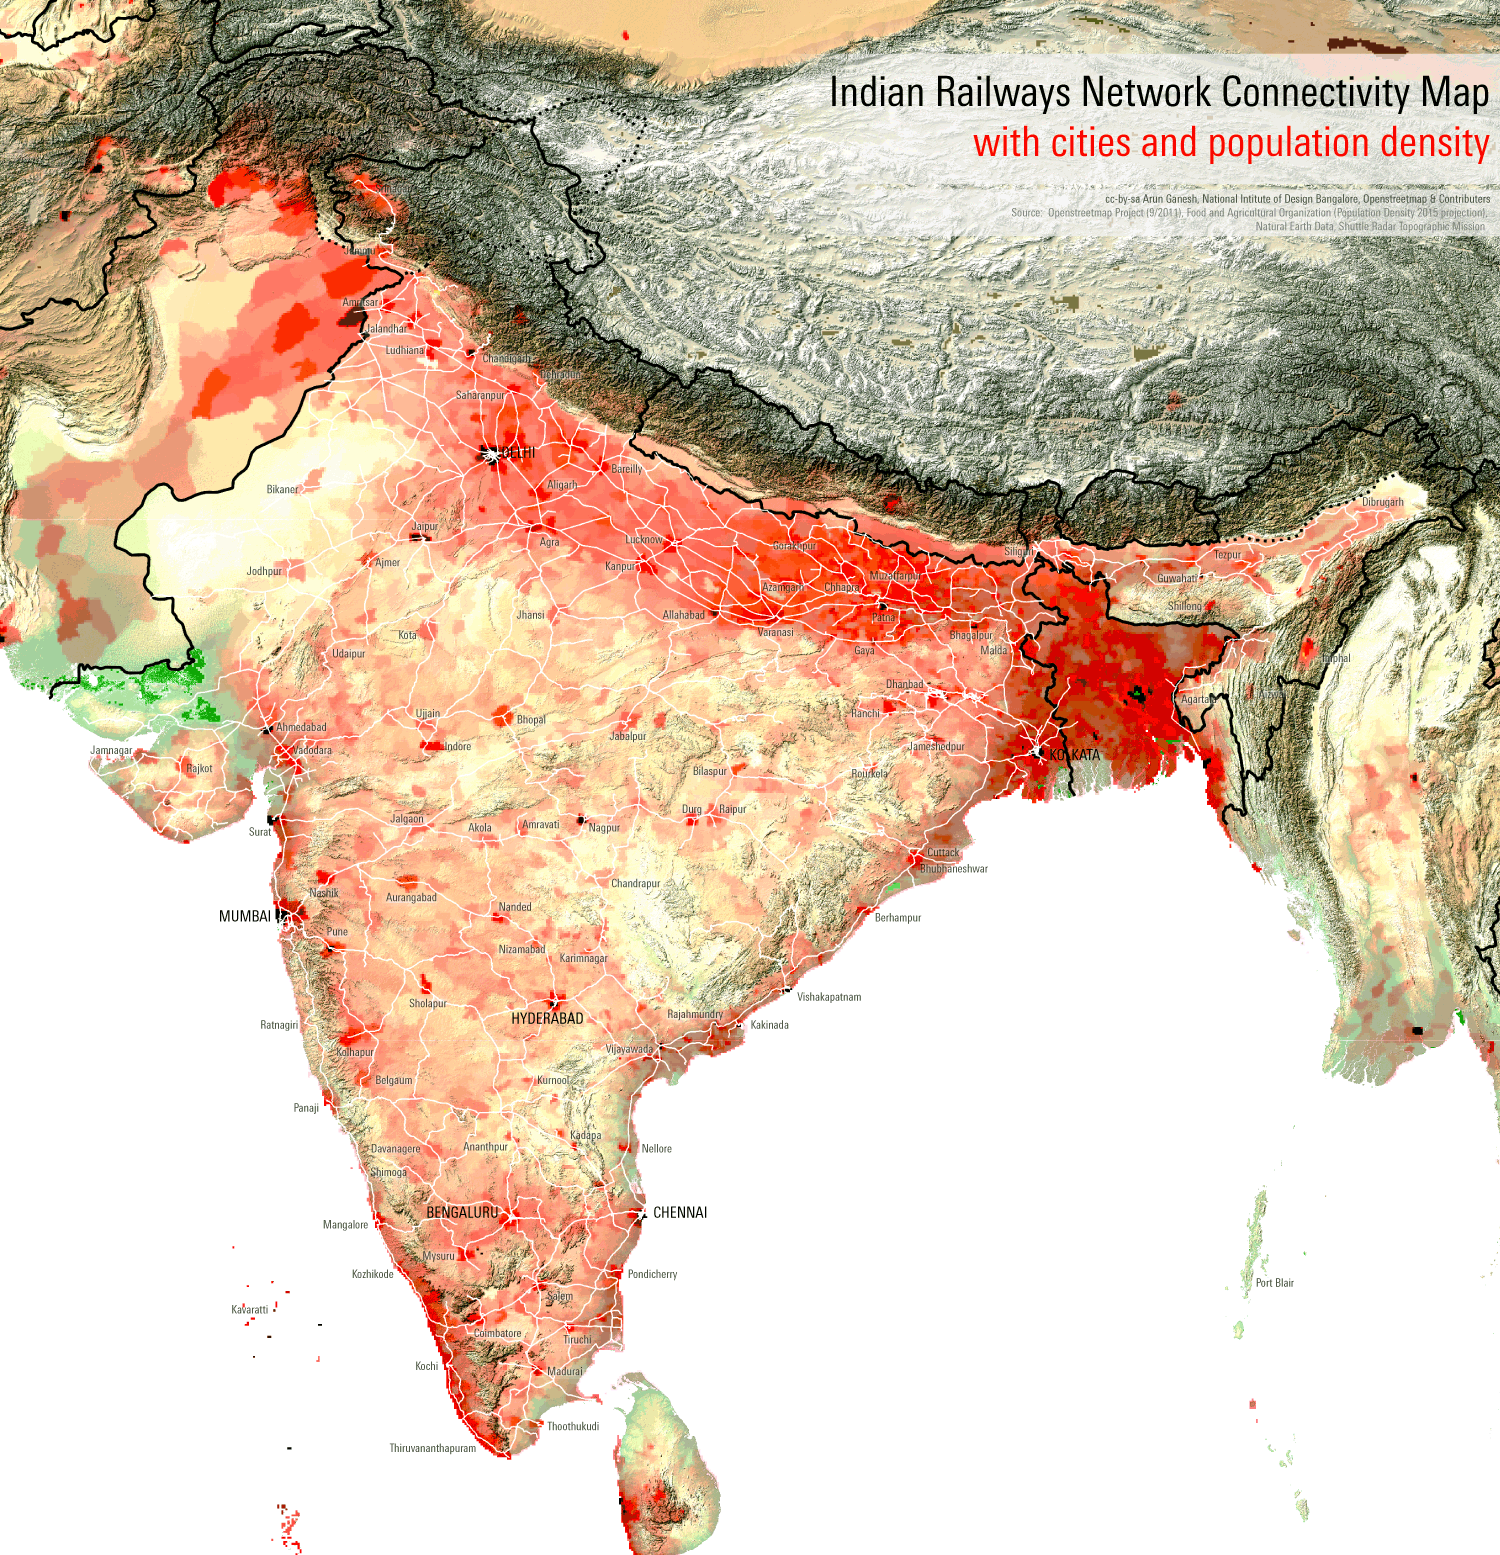 Map of India. High population density areas (above 1000 persons per square kilometer) centre on Kolkata along with other parts of the Ganges River Basin, Mumbai, Bangalore, the south-west coast, and the Lakshadweep Islands. Low density areas (below 100) include the western desert, eastern Kashmir, and the eastern frontier.